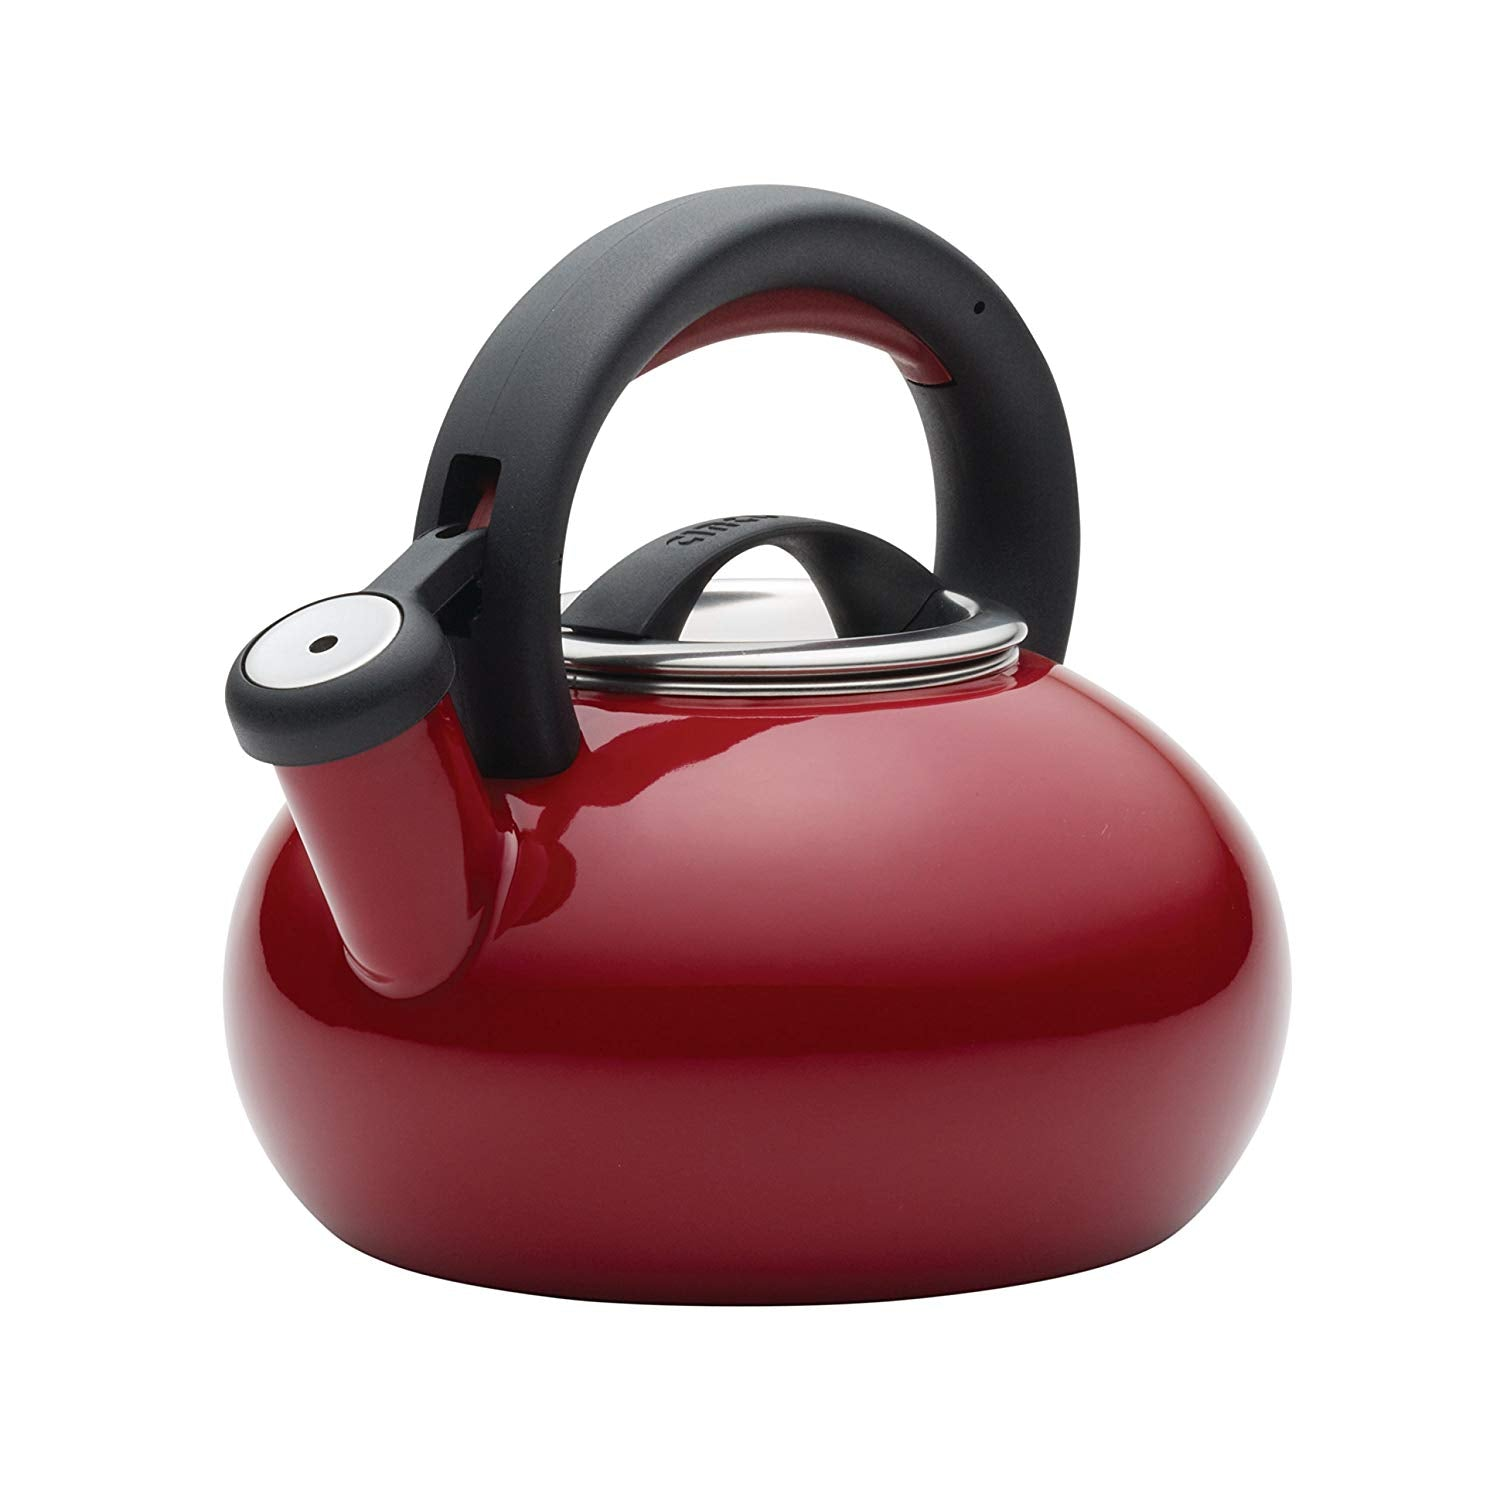 Circulon Sunrise Whistling Tea kettle, 1.4-Liter, Rhubarb Red - Pots and Pans